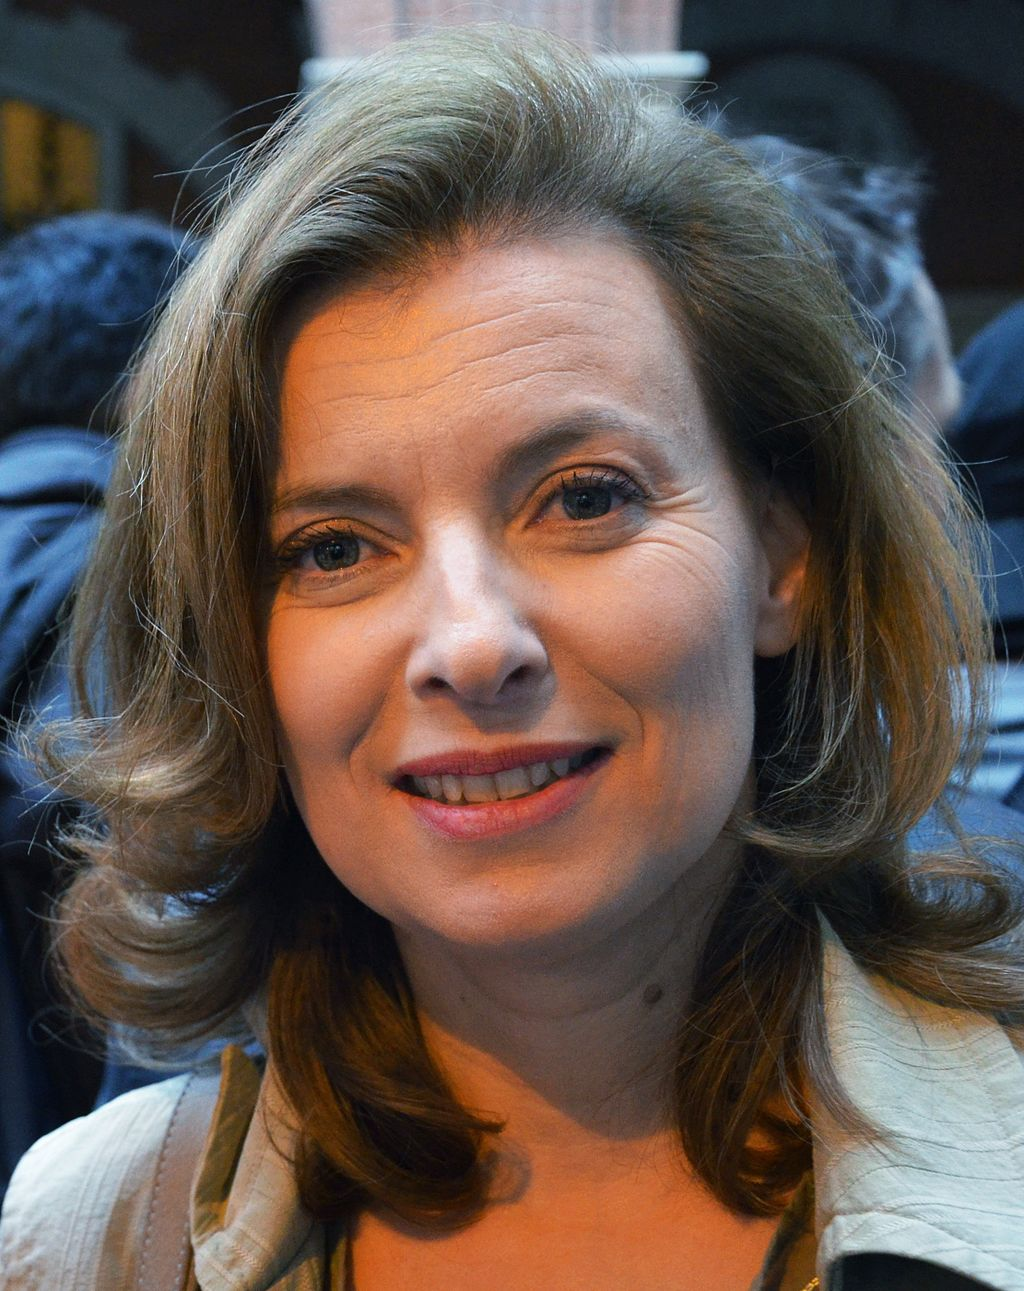 Valérie Trierweiler en 2012 | Photo: Wikimedia Commons